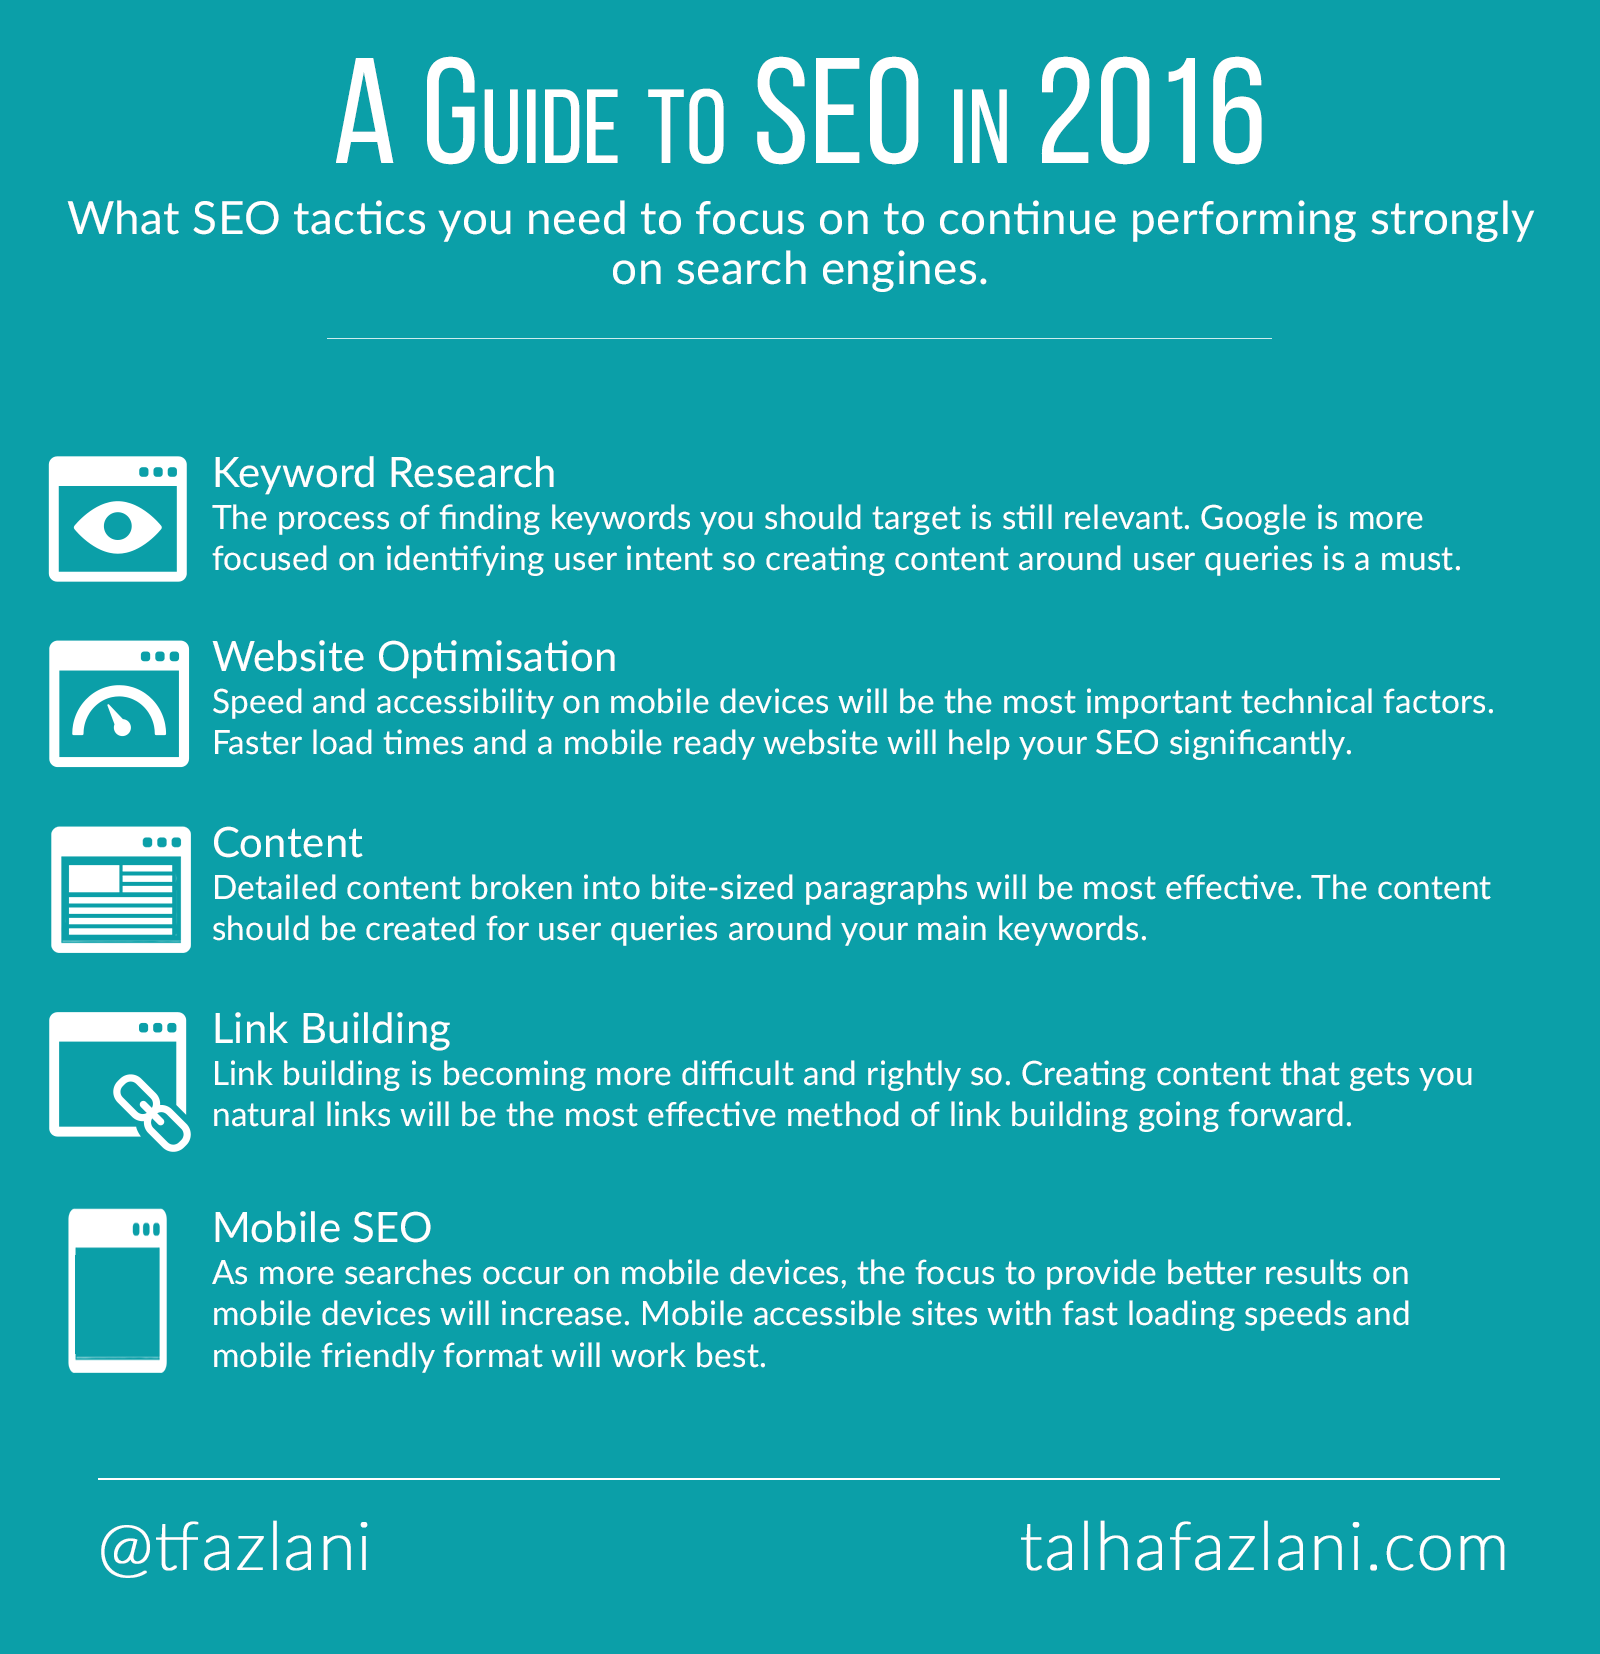 A guide to SEO in 2016